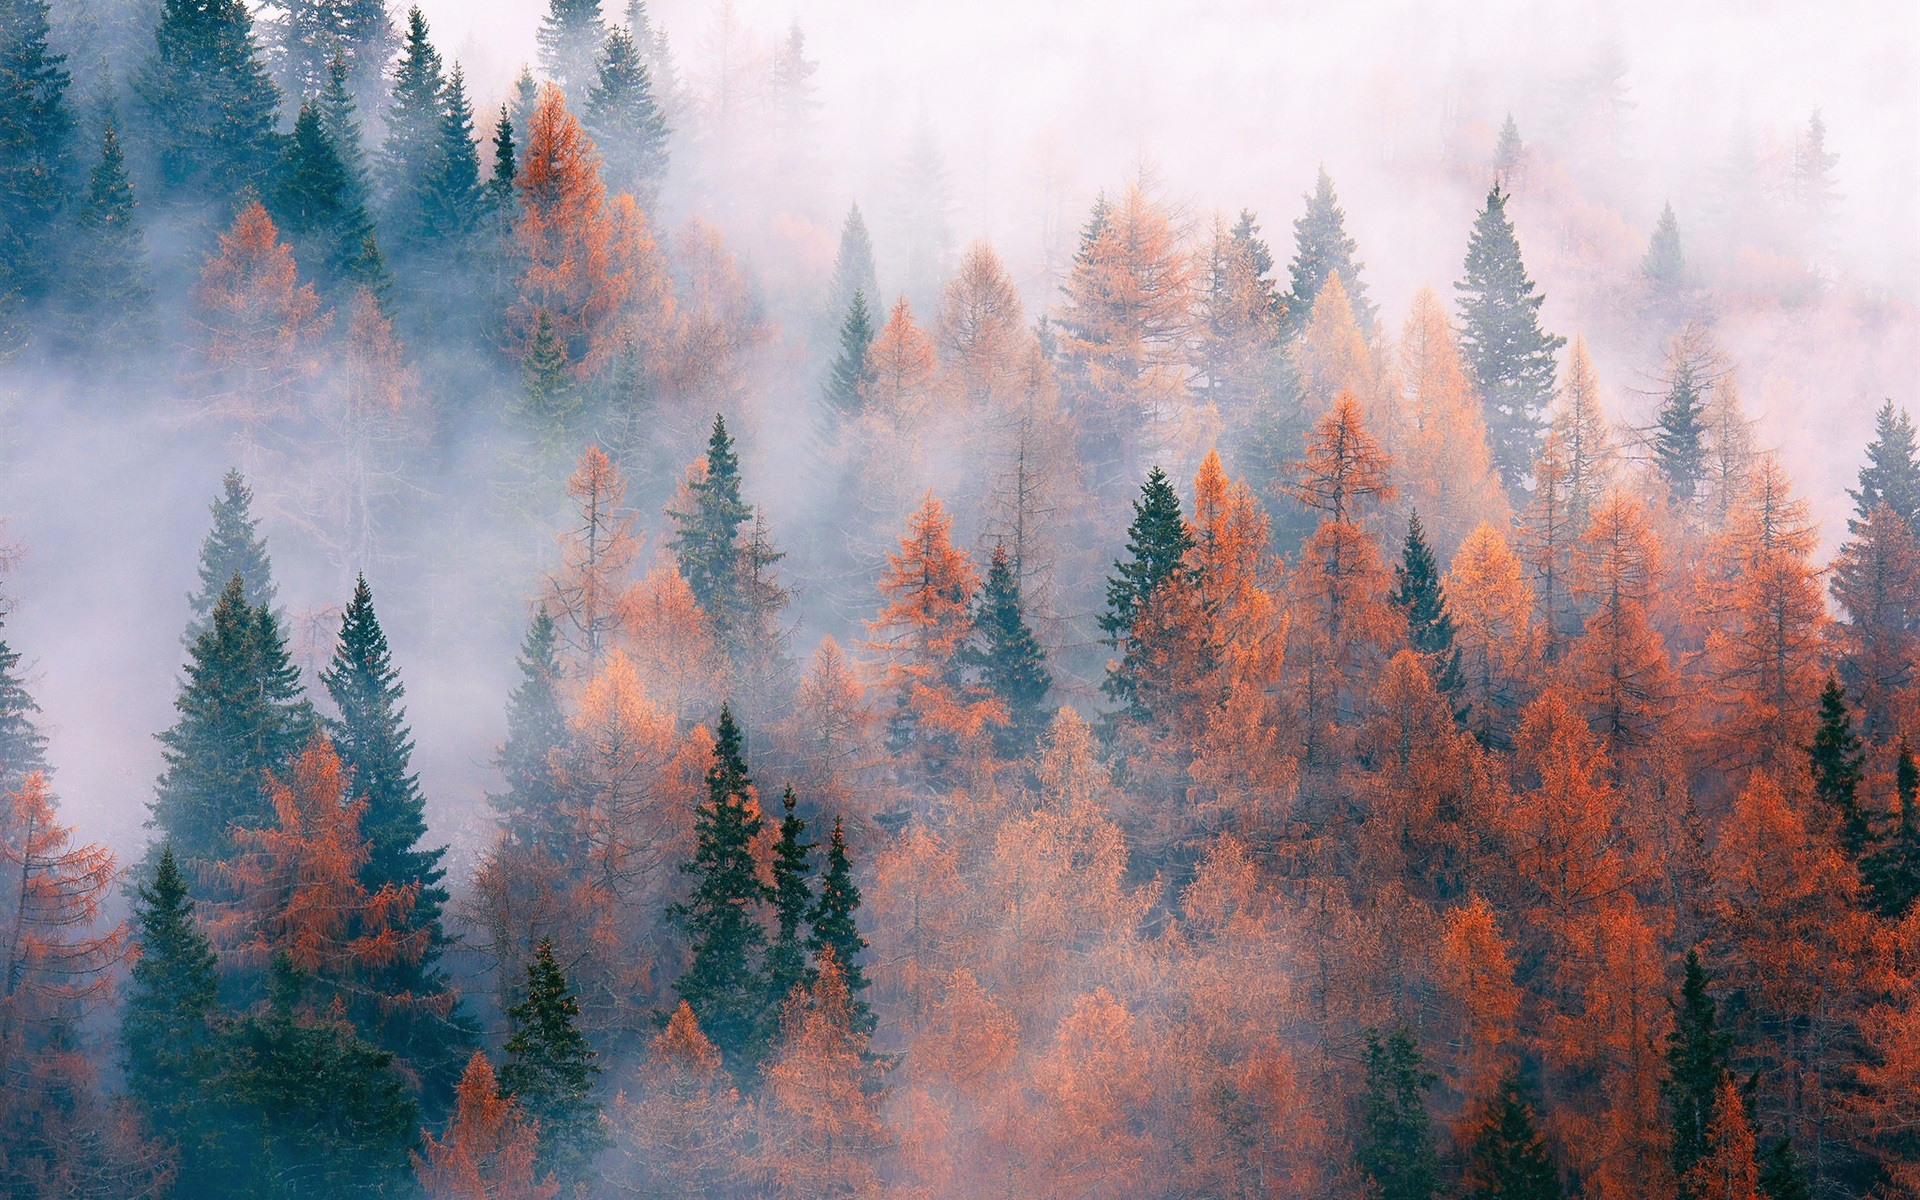 Wallpaper Forest Trees Fog Autumn 1920x1200 Hd Picture Image